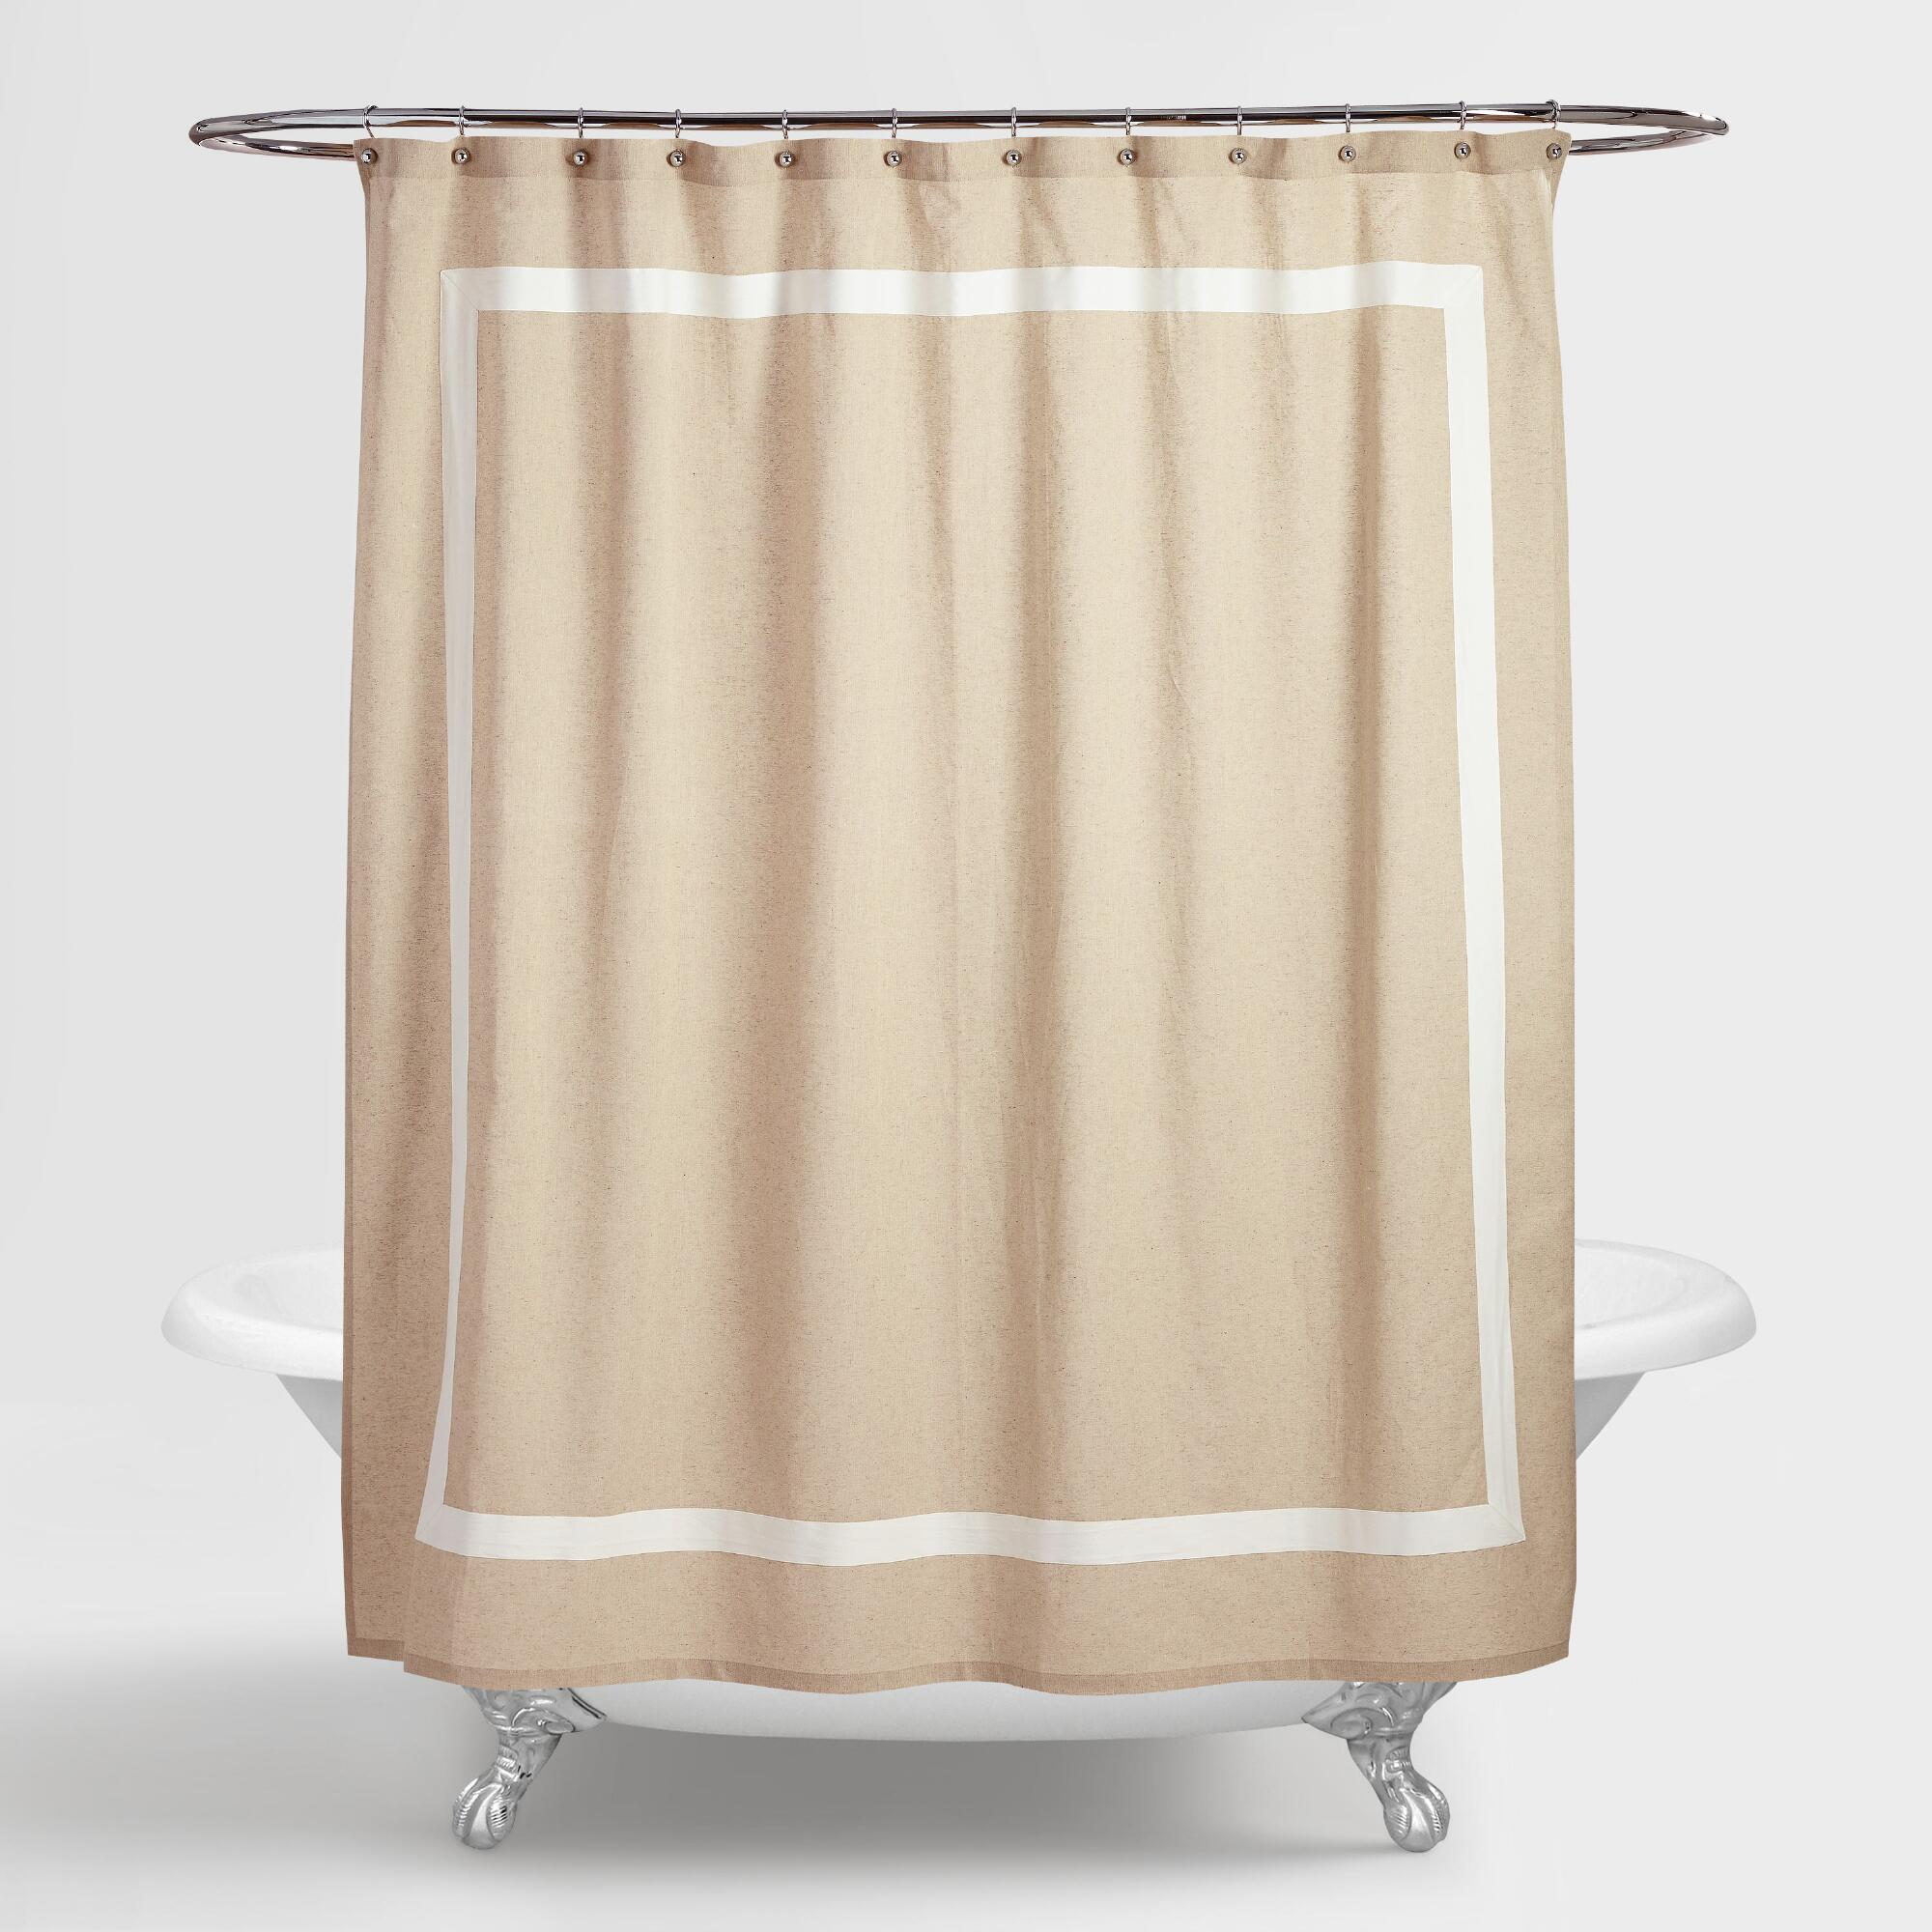 Curtains Bathroom: Amalie Linen Shower Curtain